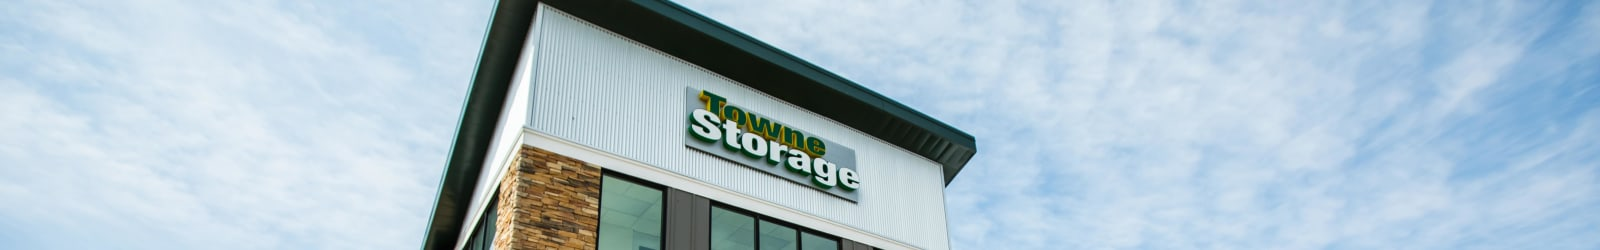 Moving trucks at Towne Storage - Colt Plaza in West Valley, Utah